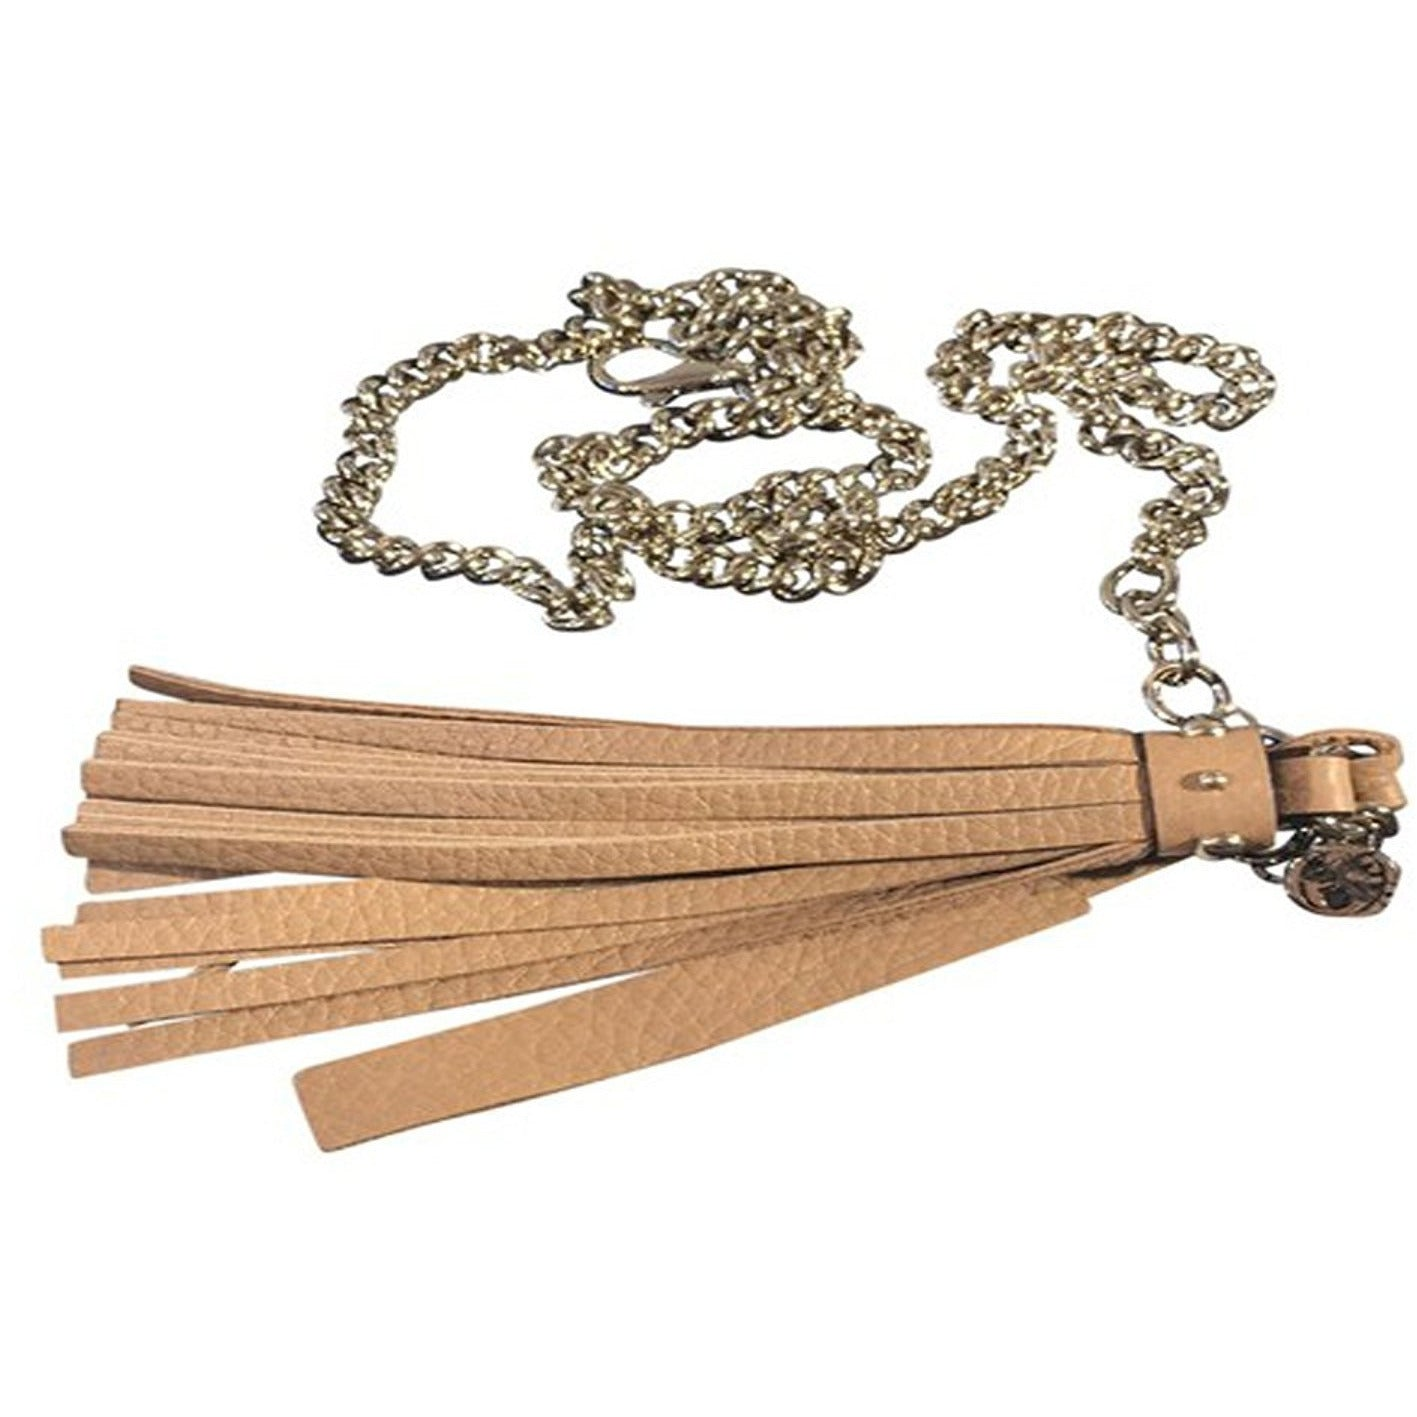 Gucci Women's Leather Tassel Gold Chain Belt  Camelia Beige Size (34) 388992